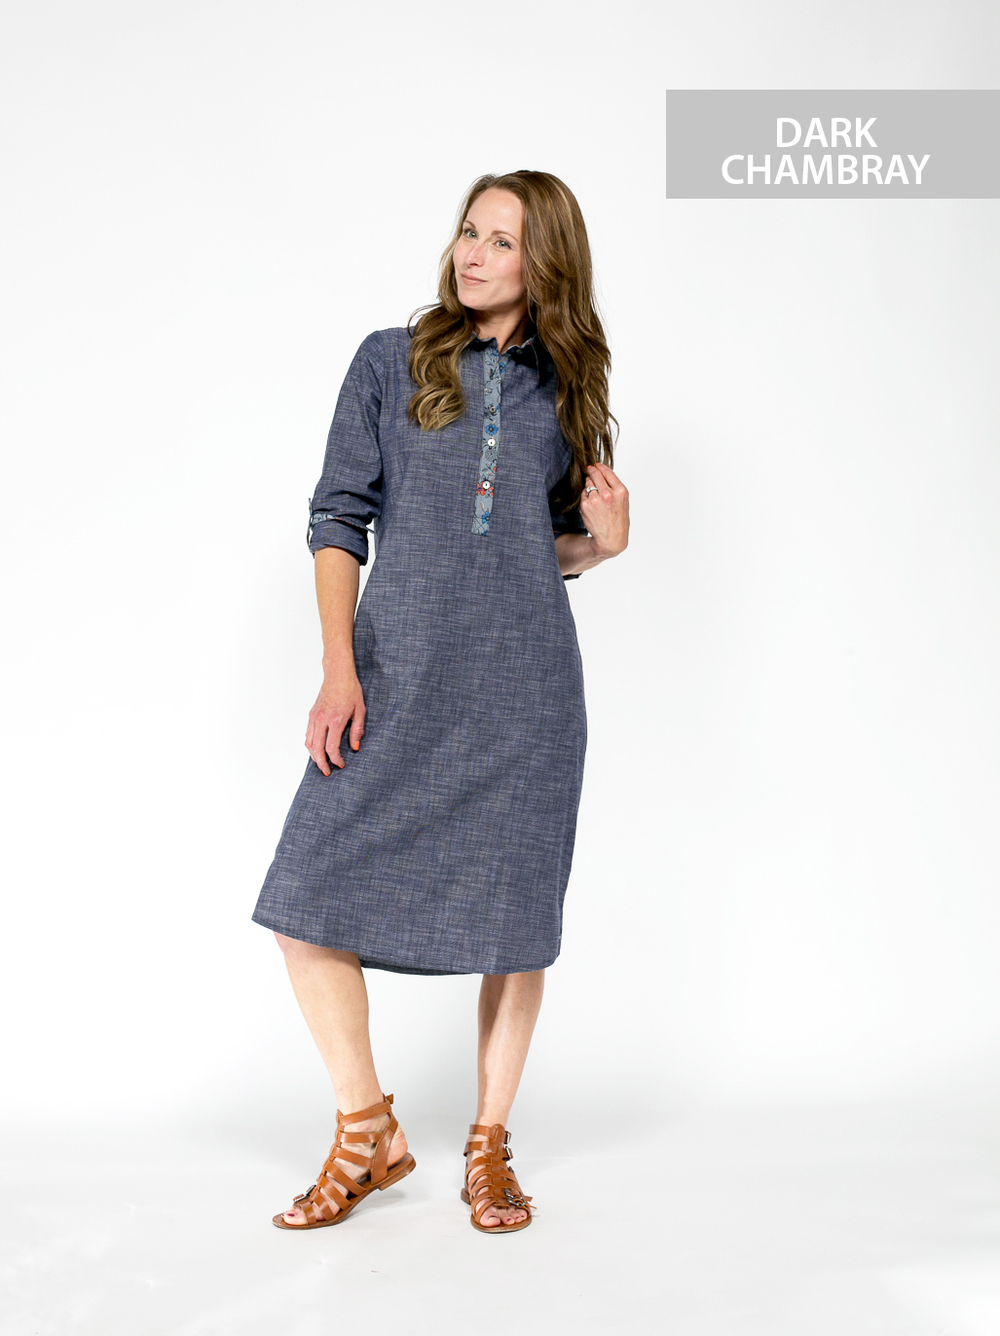 dark chambray shirt dress.jpg